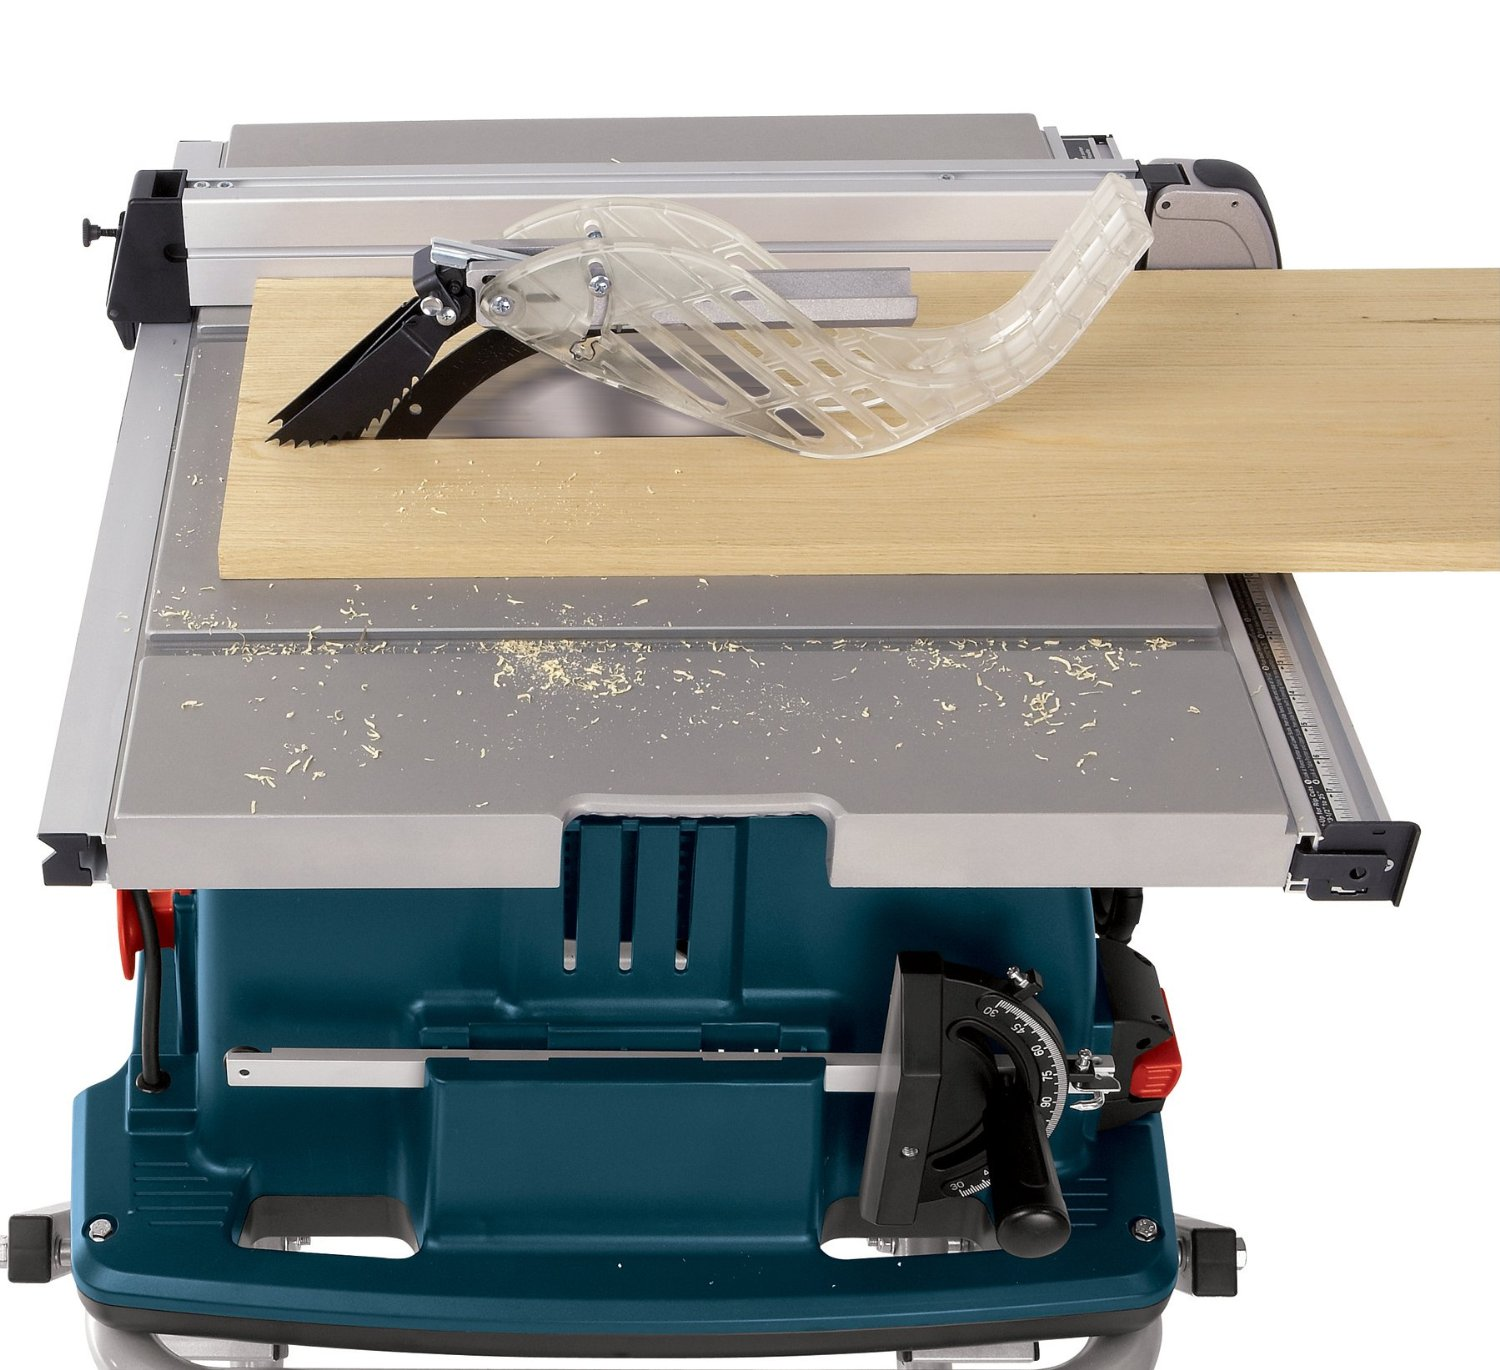 Bosch 4100 09 review a portable table saw bosch 4100 09 10 inch table saw greentooth Images